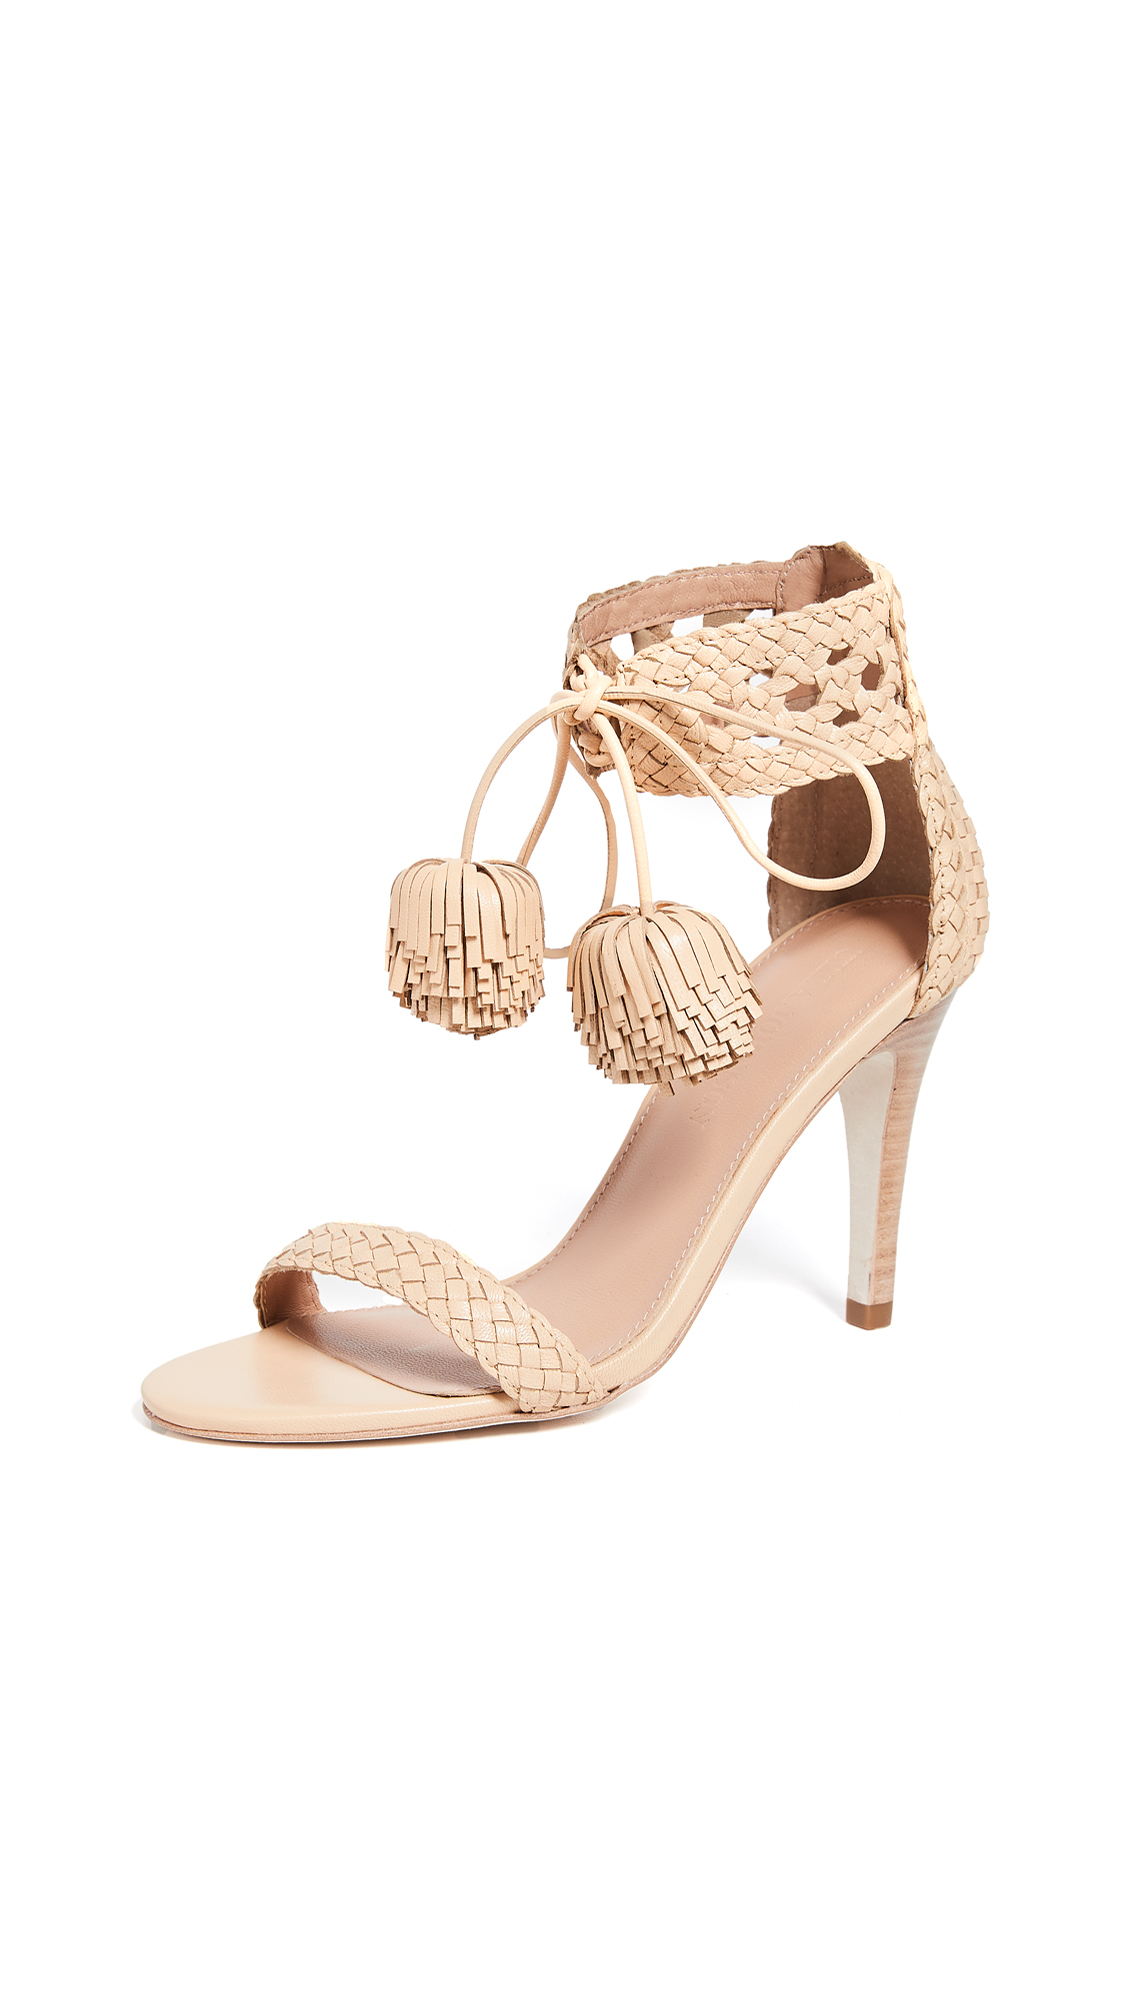 Ulla Johnson Clara Heel Sandals - Natural